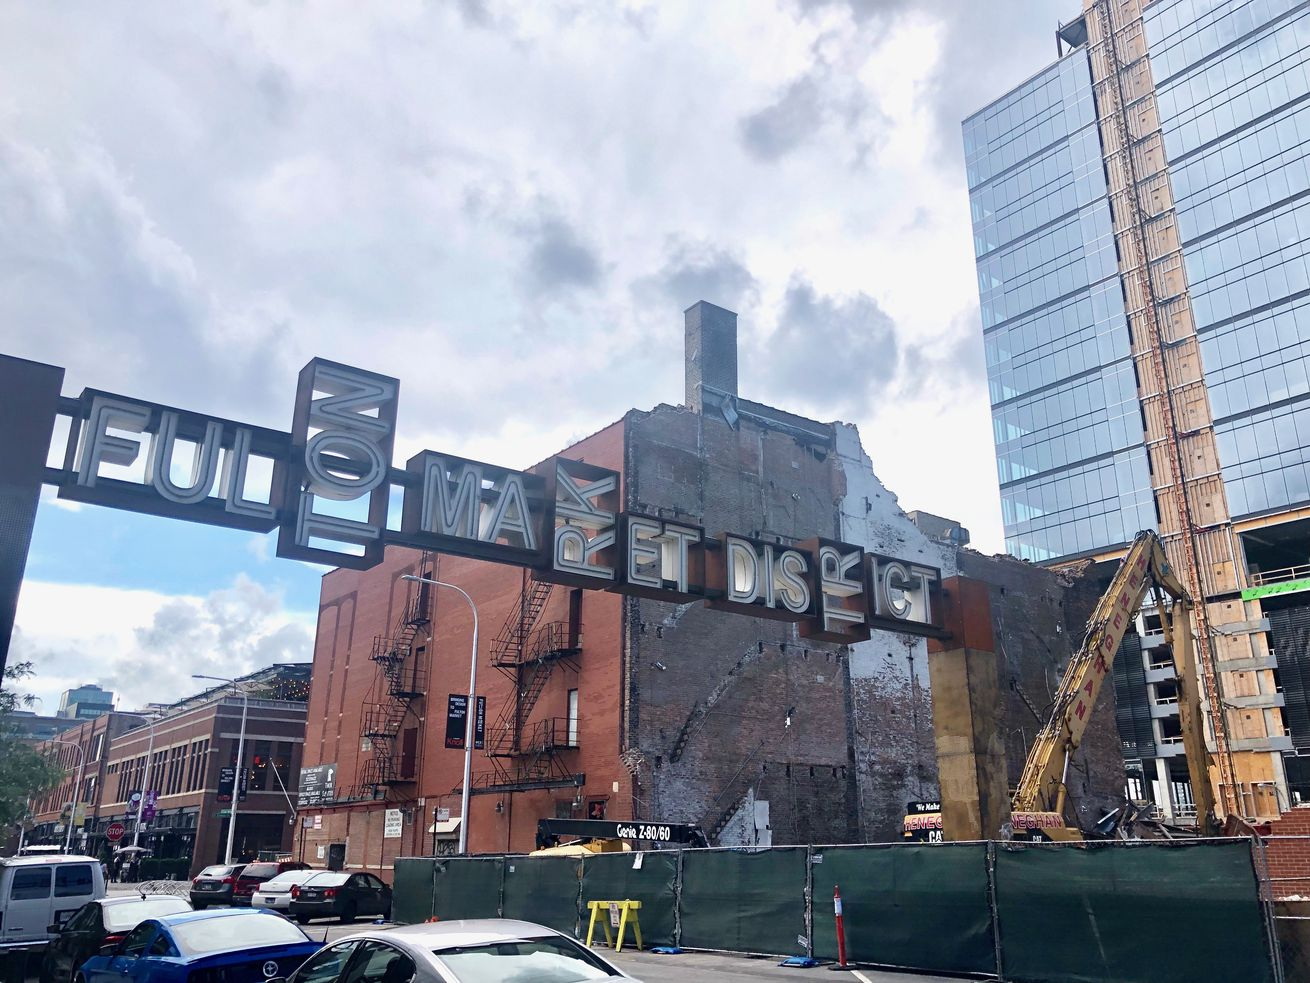 The project at 800 W. Fulton Market also tears down the former home of The Mid nightclub.